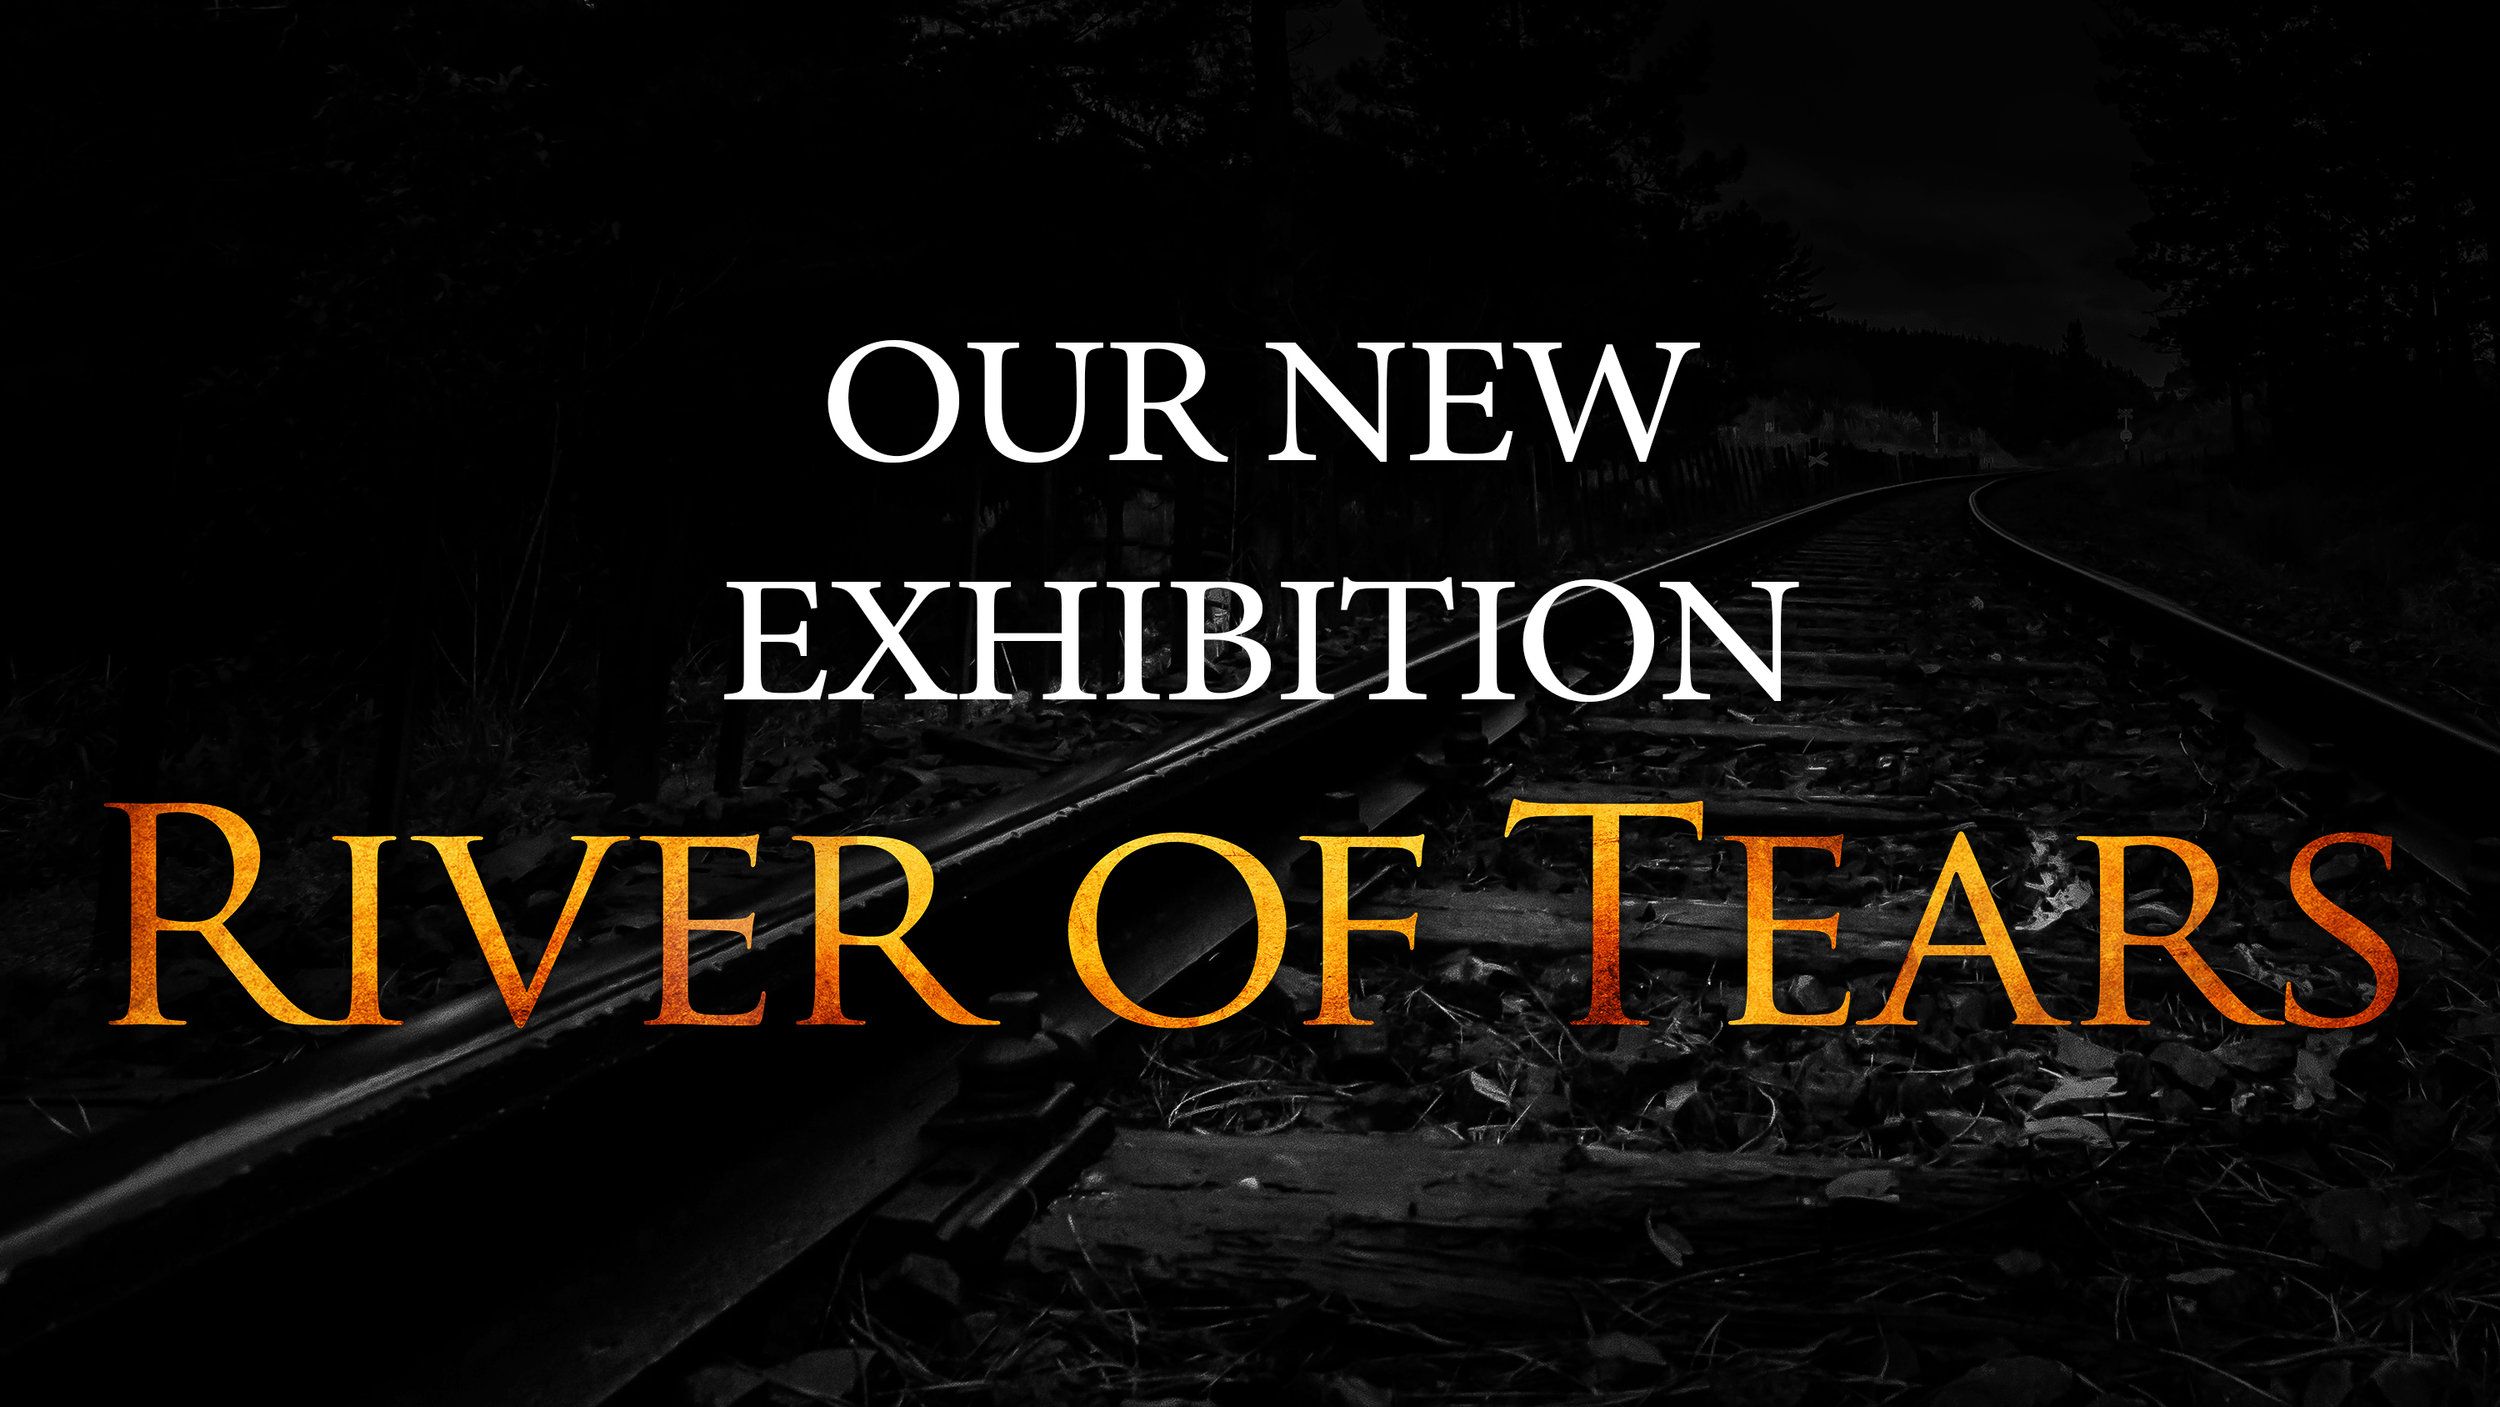 Our-new-Exhibition.jpg